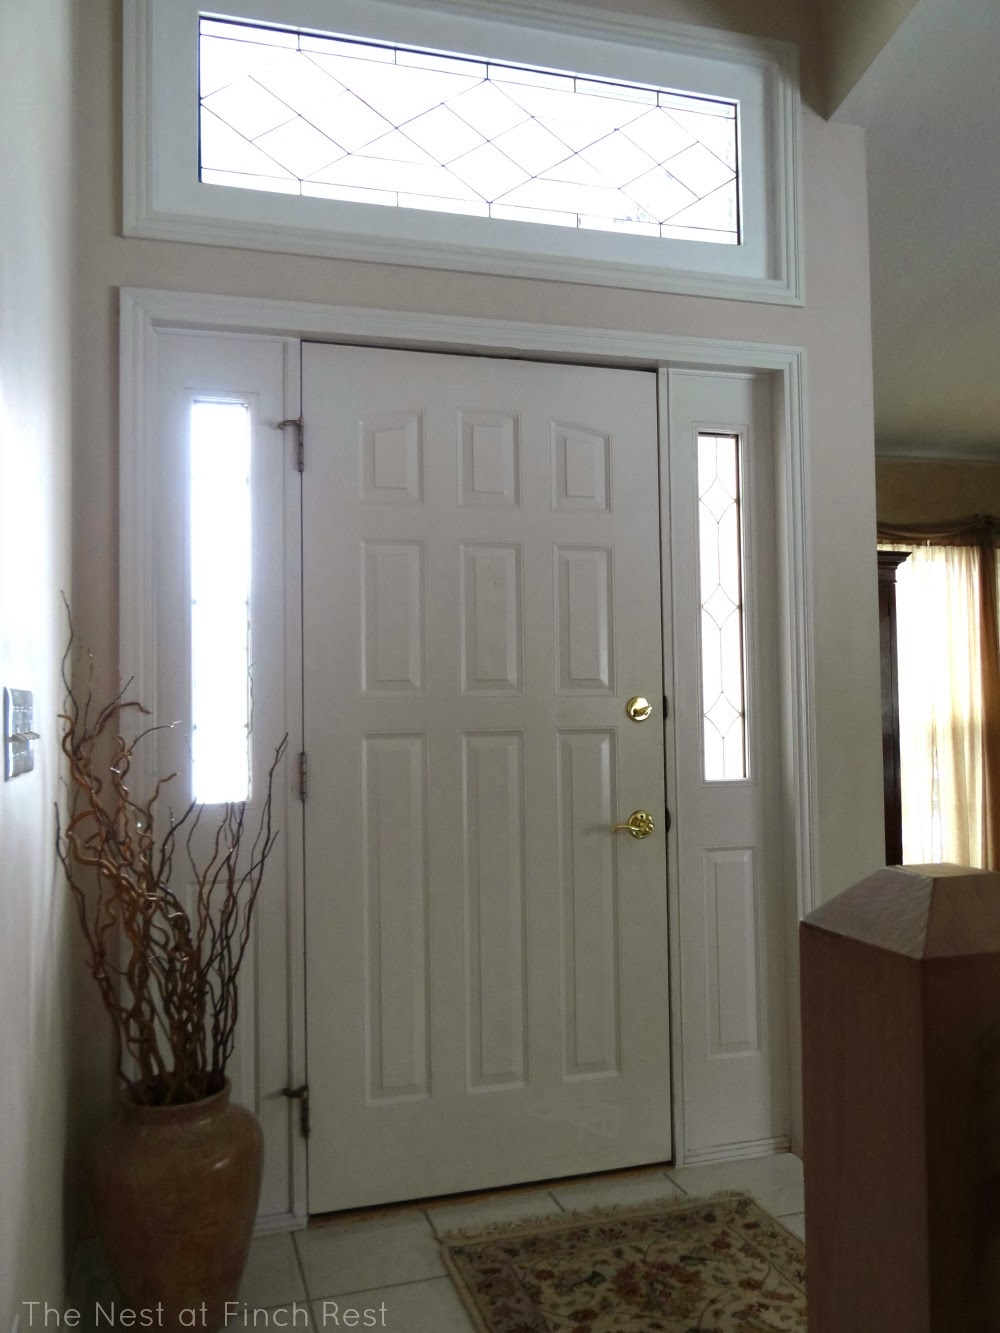 The Nest At Finch Rest Front Door Transom Window Before And After